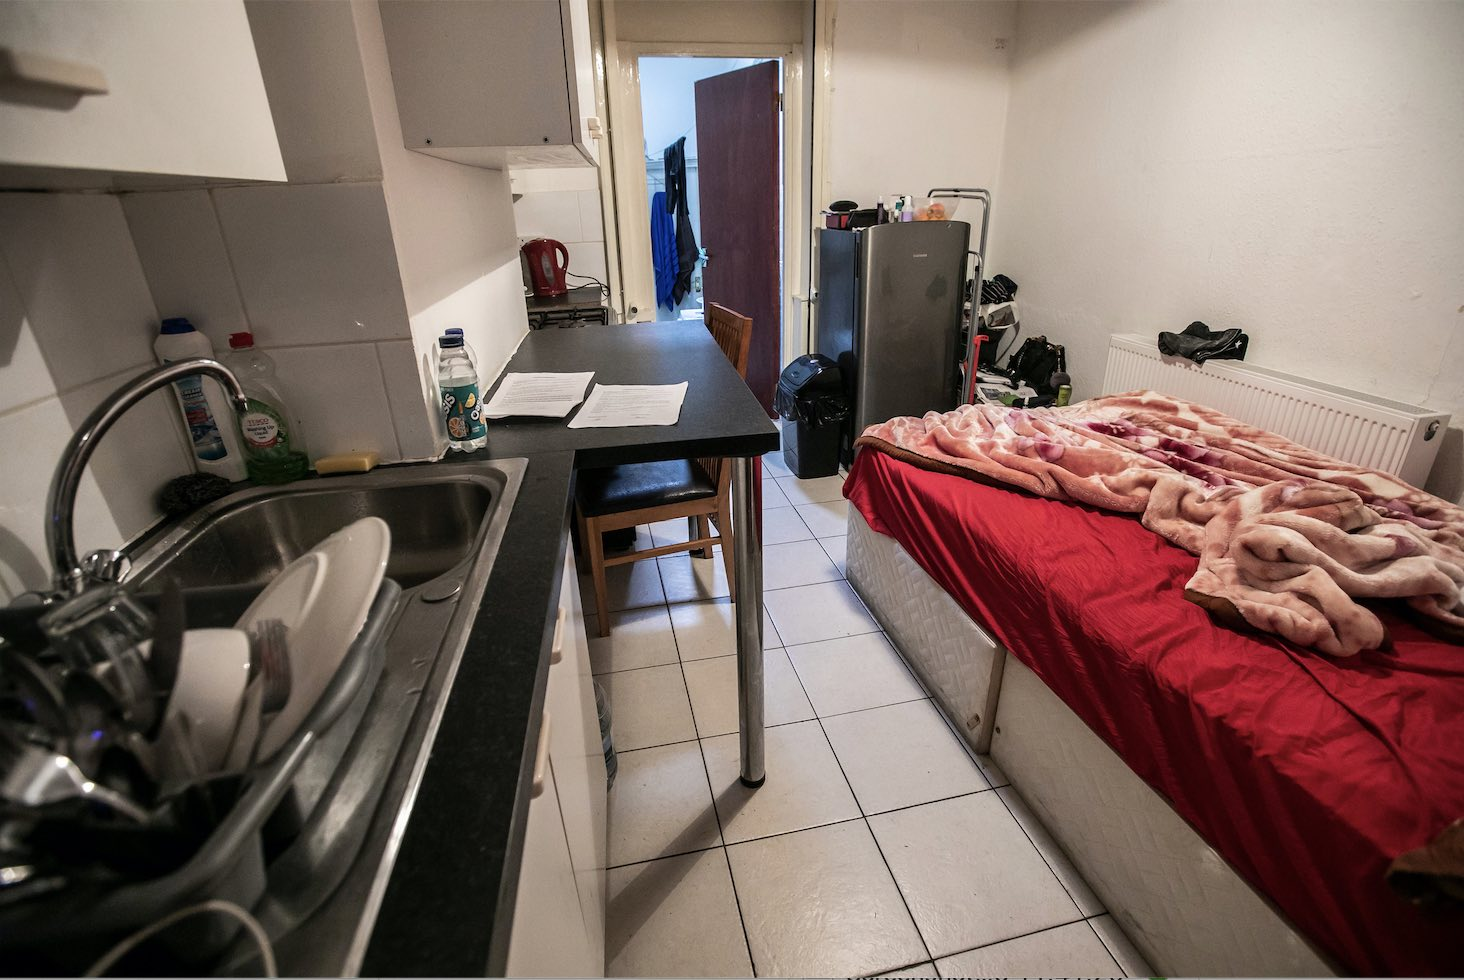 Waltham Forest Council are renewing there selective licensing scheme to tackle poor housing conditions like this, 2020